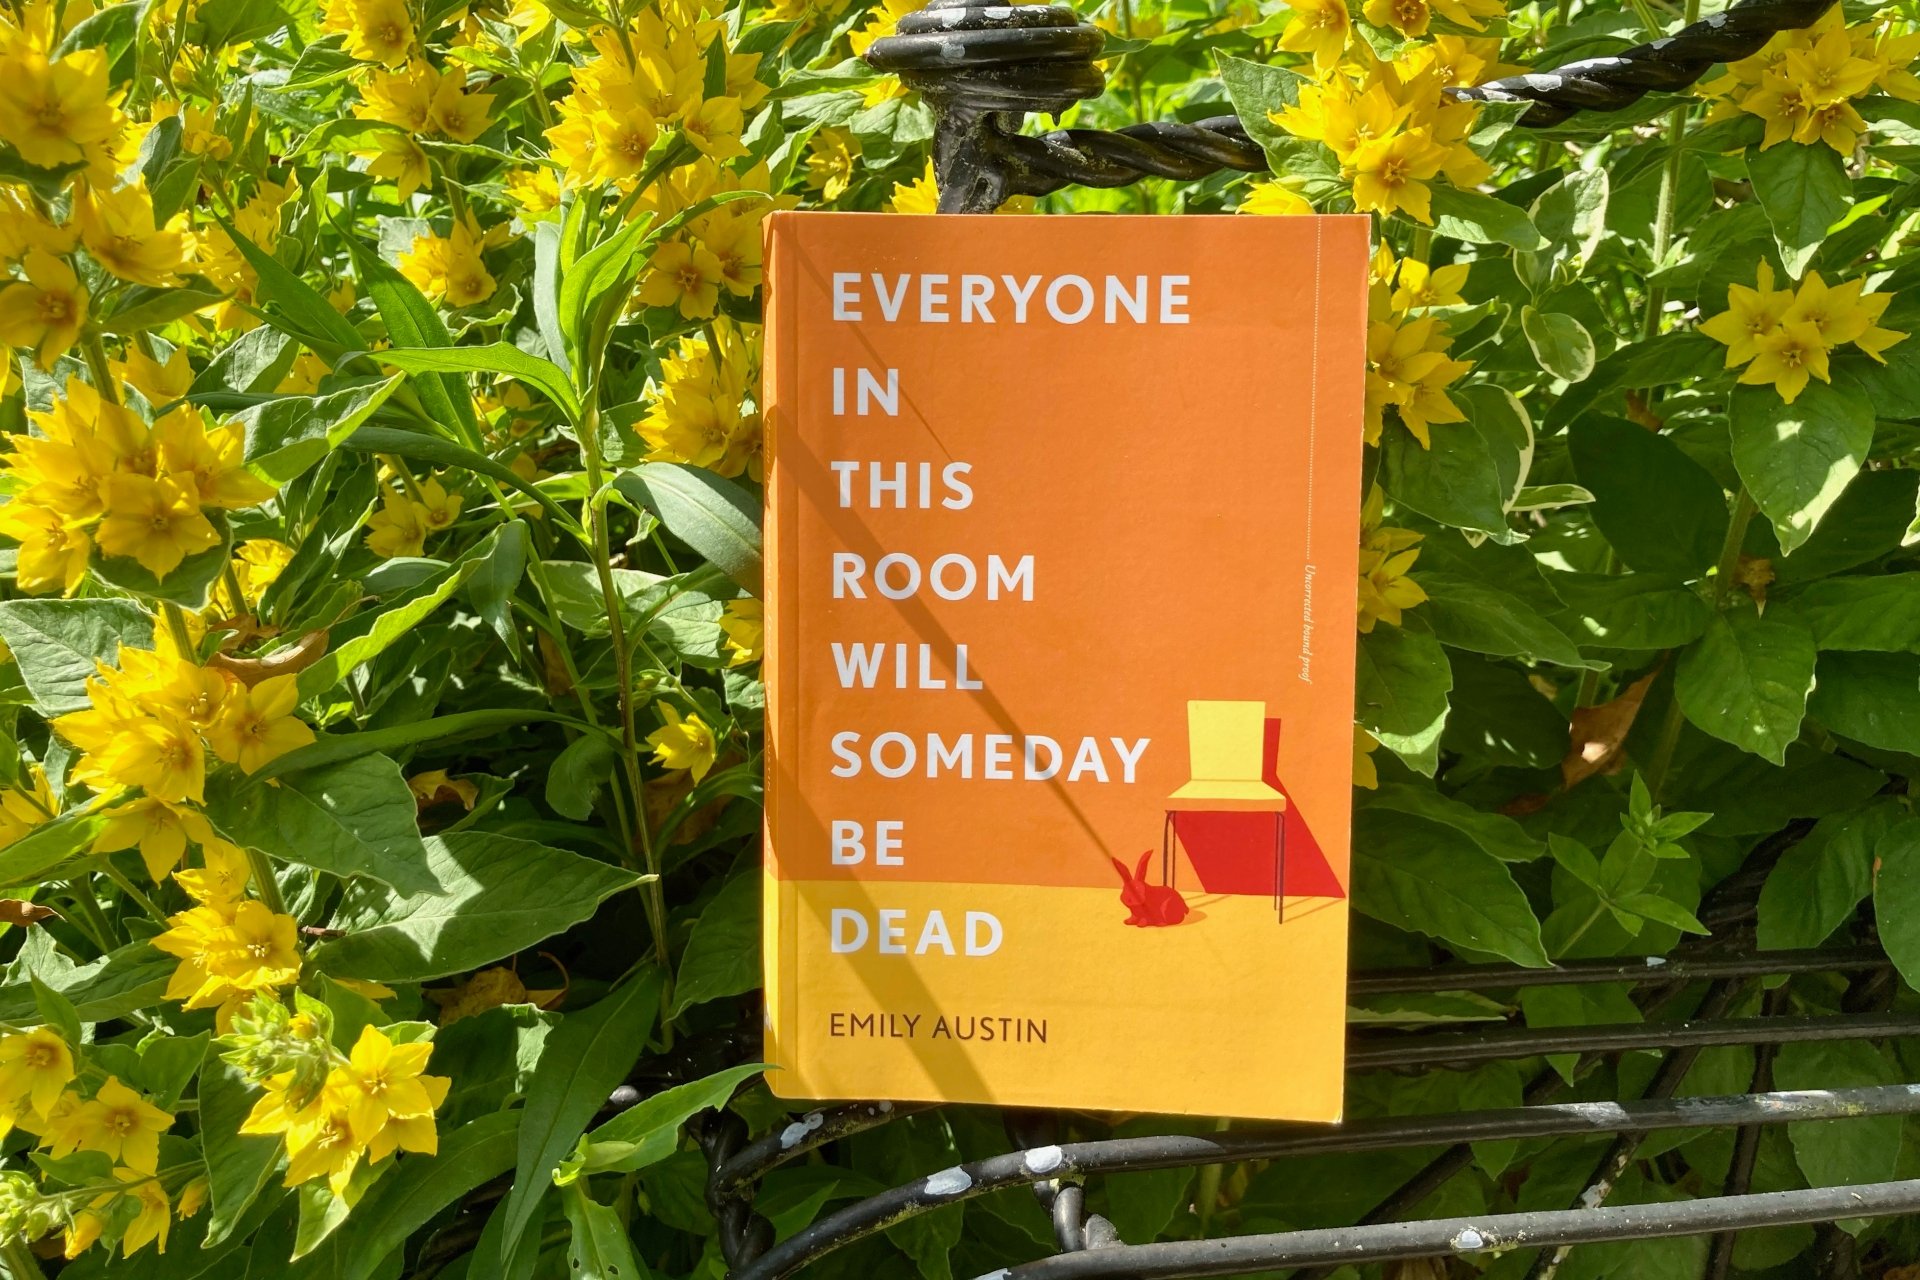 July 2021 Book Club Recommendation: Everyone in This Room Will Someday Be Dead by Emily Austin